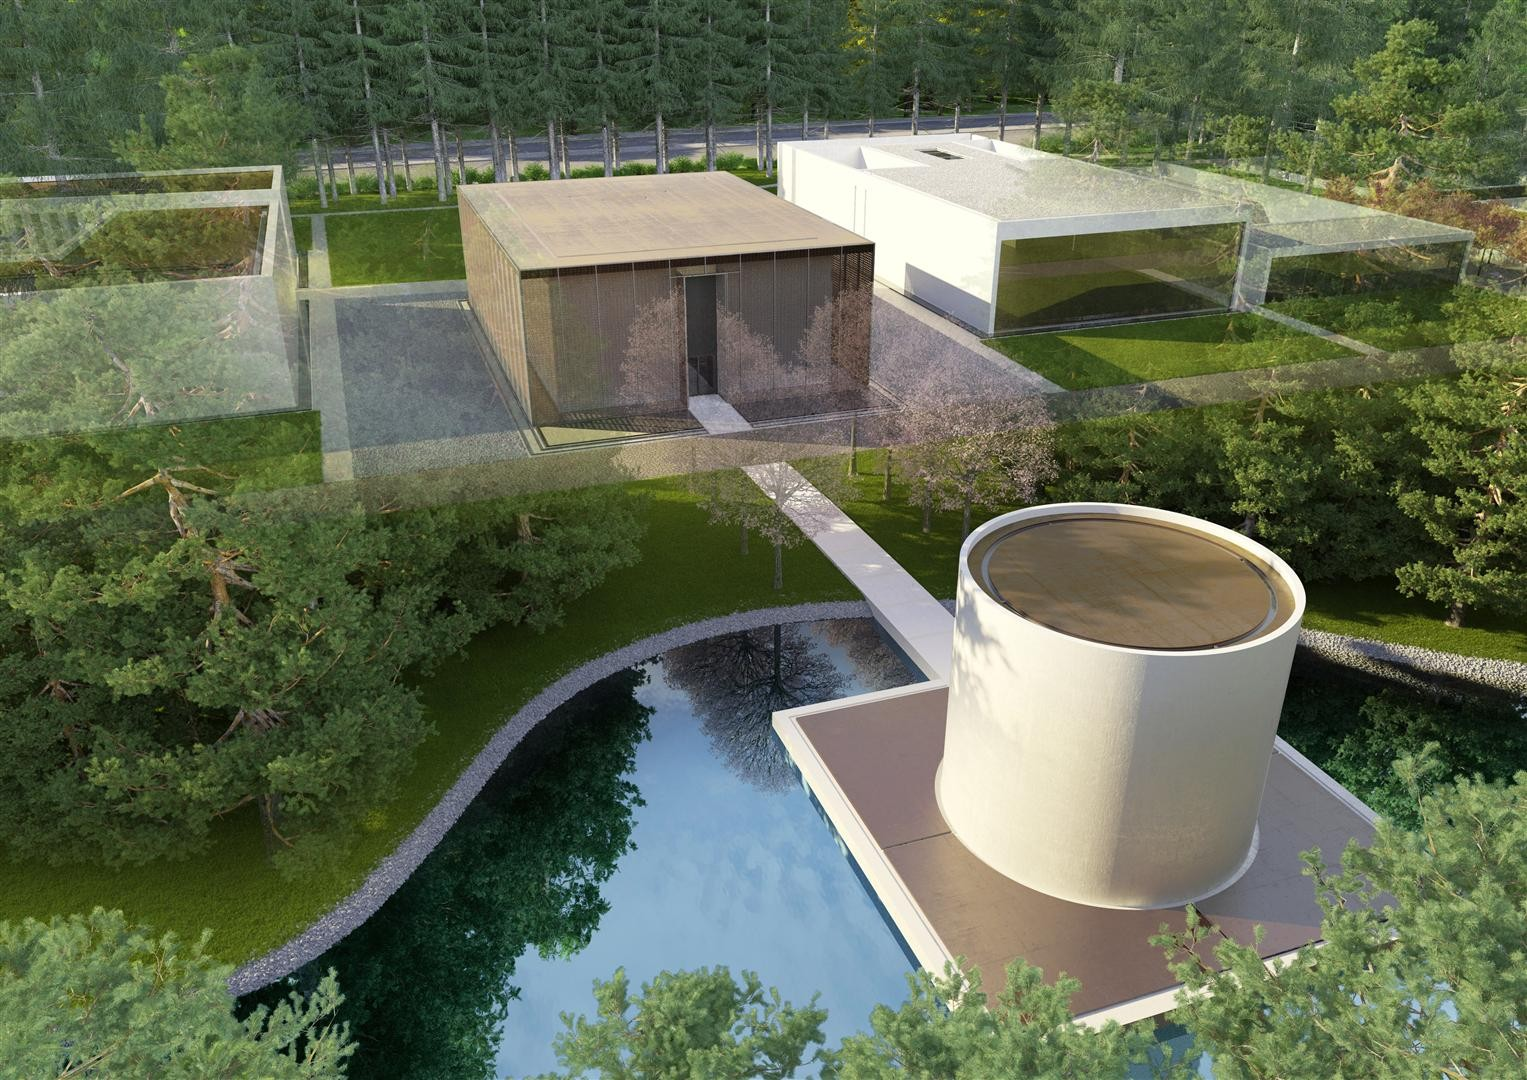 Gallery Of Famen Temple Zen Meditation Center Winning Proposal Oac